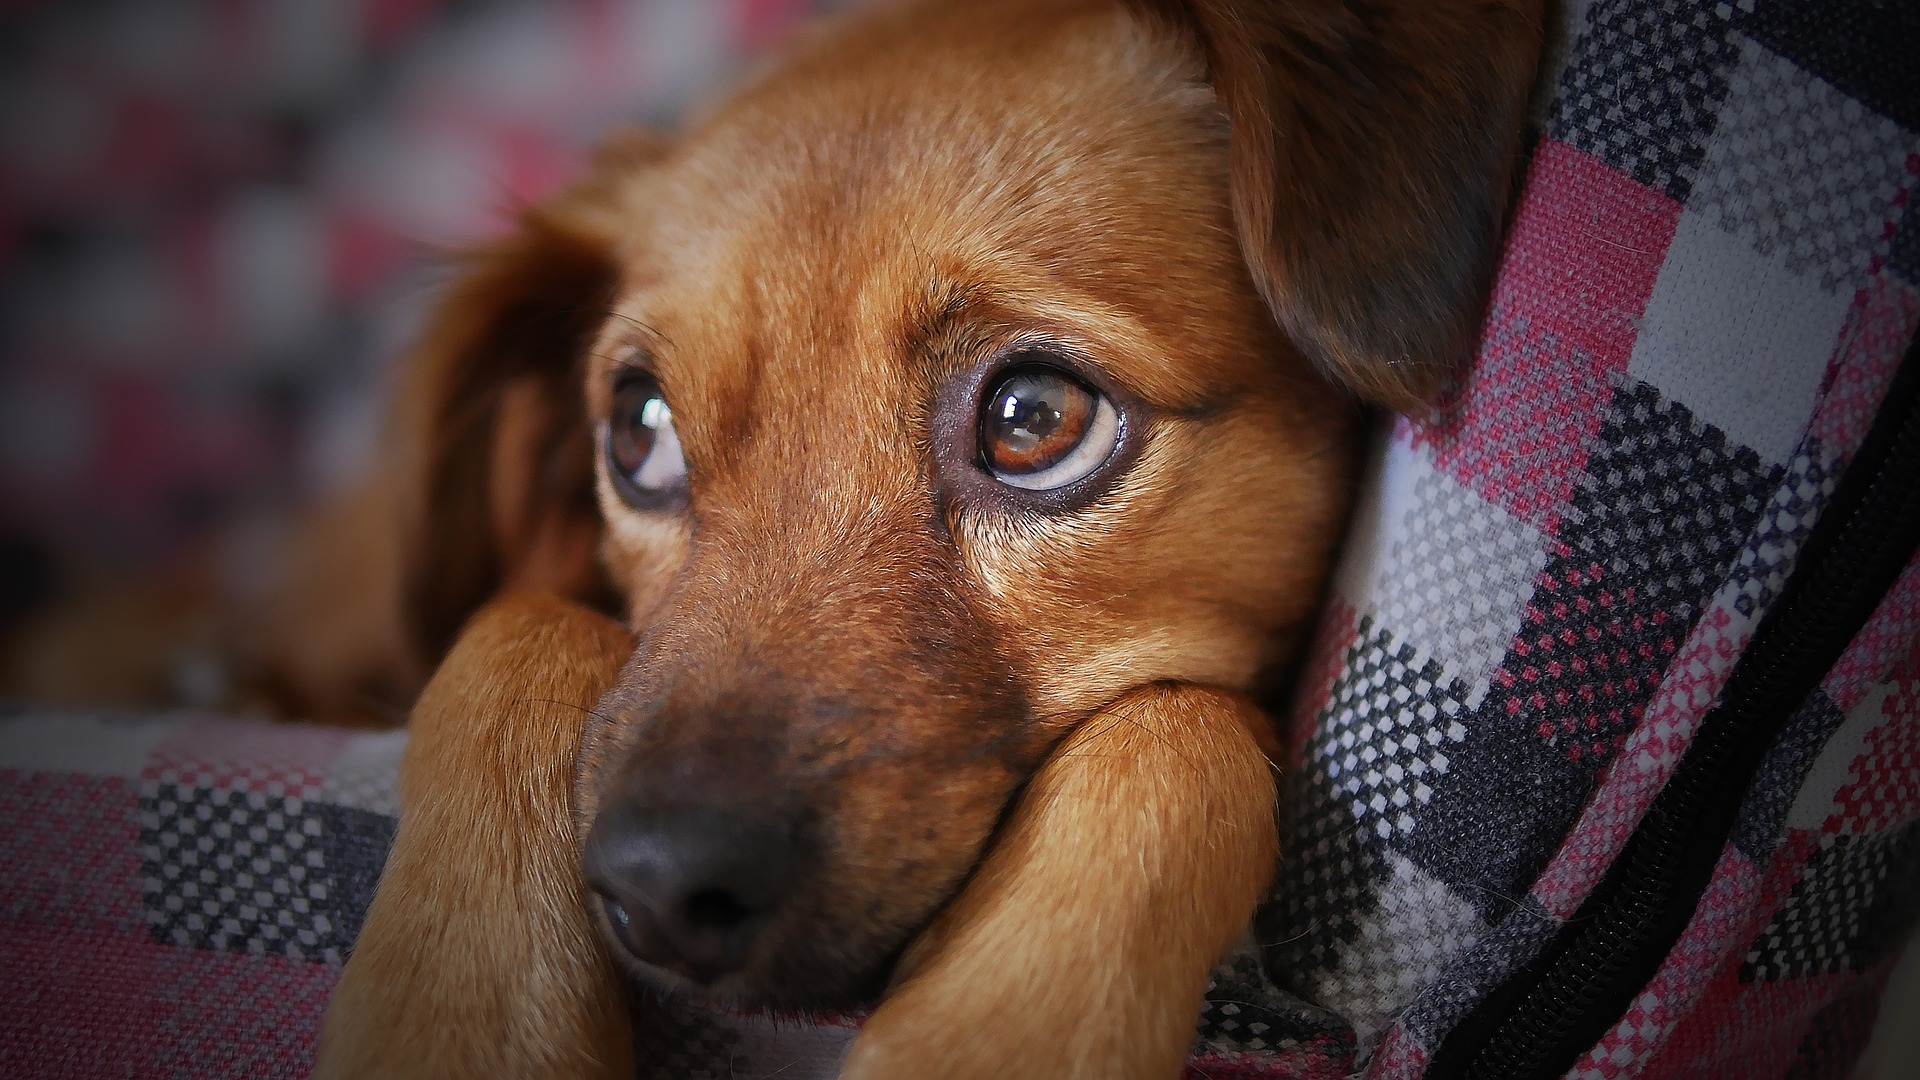 Adolescent Dogs: 6 Facts To Know